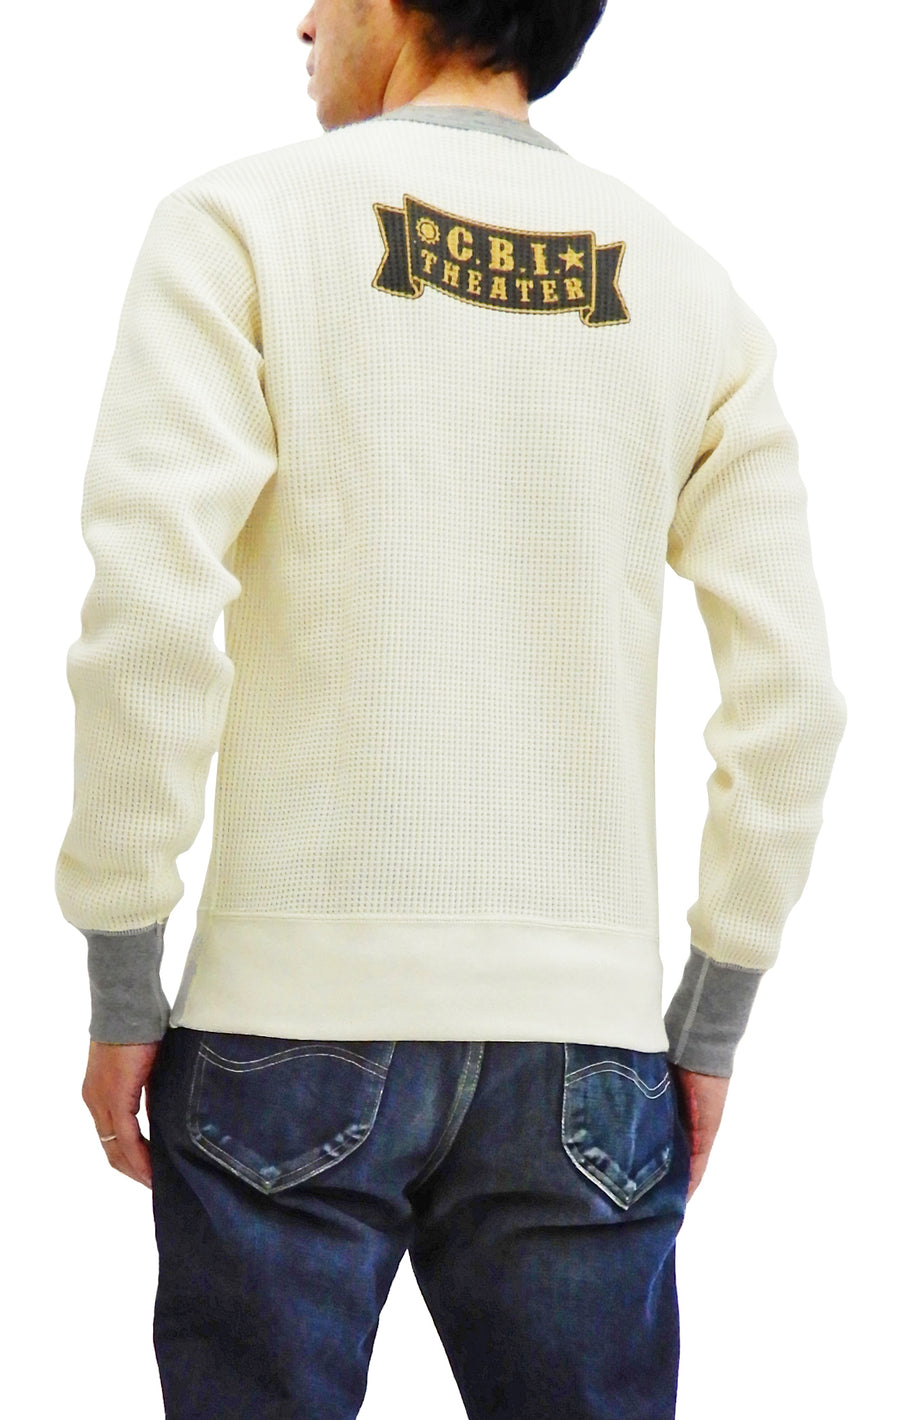 TOYS McCOY Men's Waffle-Knit Long Sleeve Thermal T-Shirt Flying Tigers TMC1855 Off-White